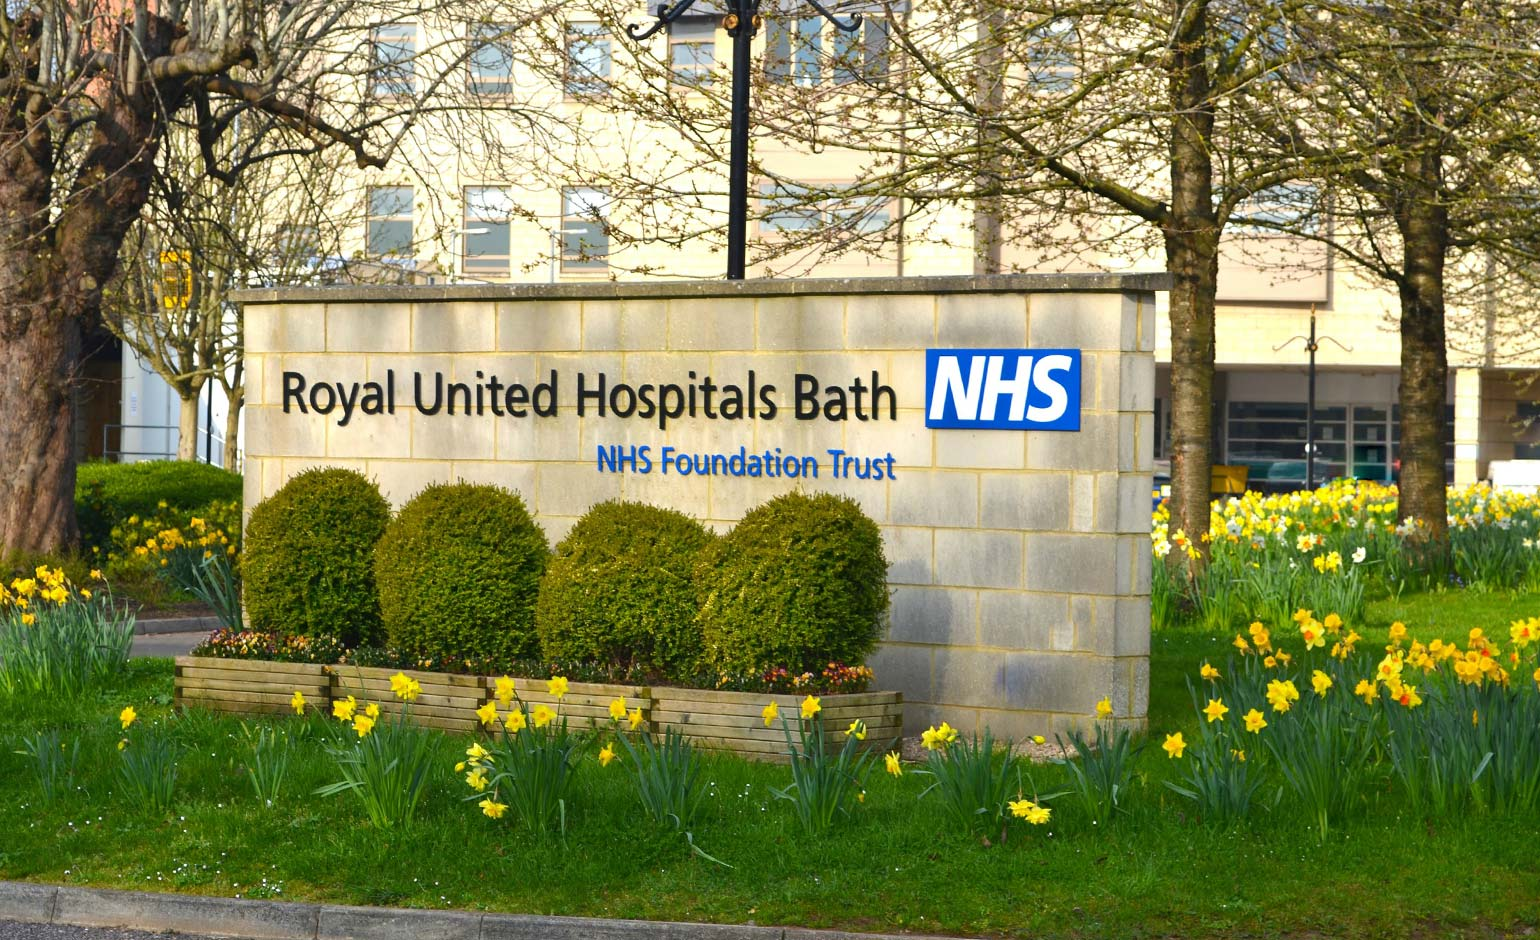 Royal United Hospital in the running to secure up to £450 million in funding